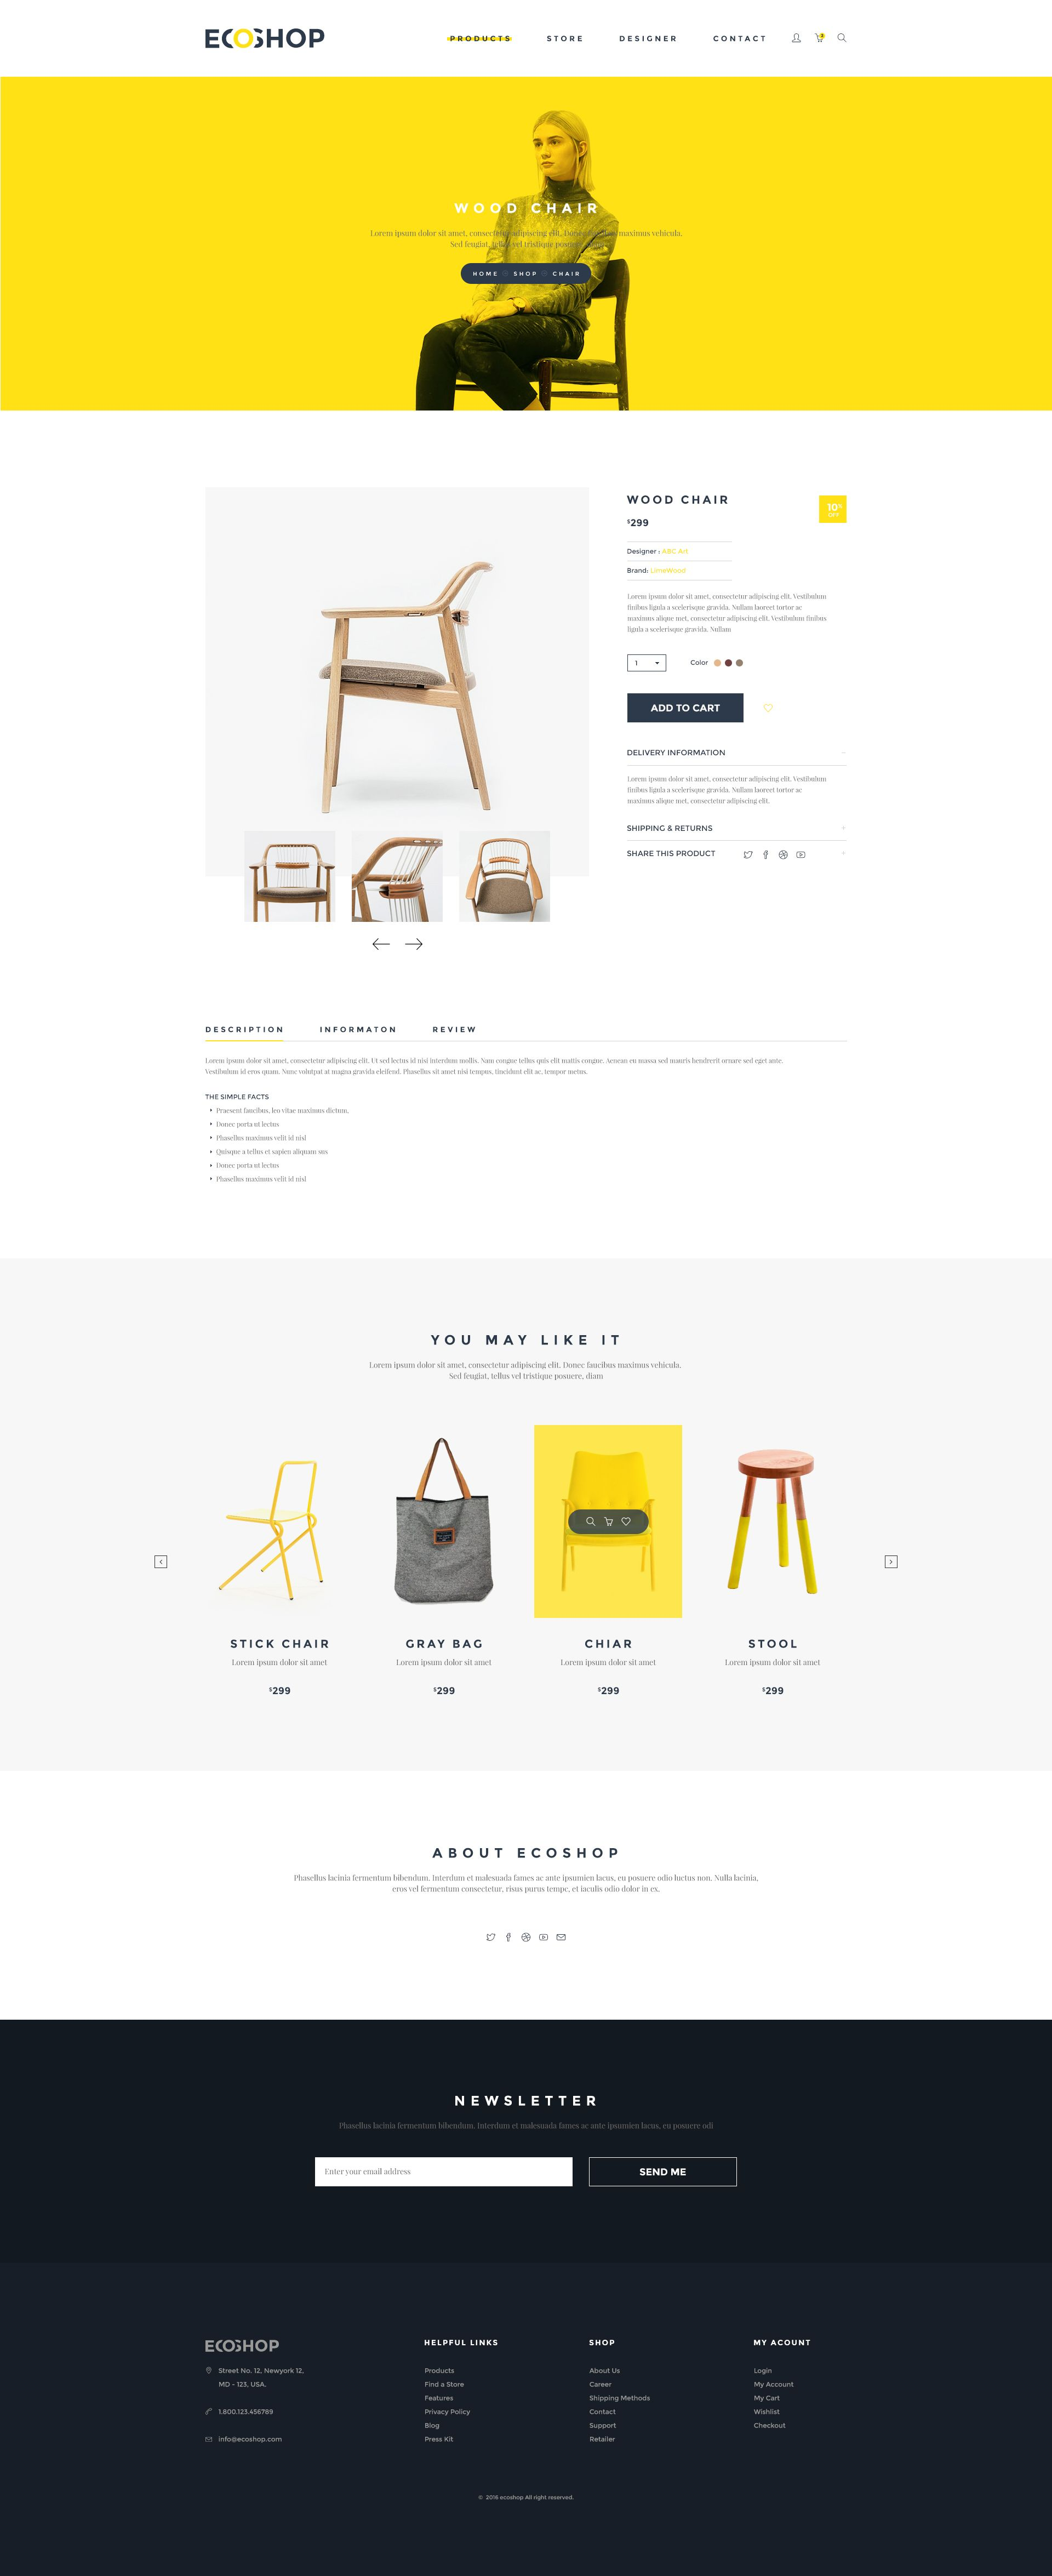 Ecoshop is high quality ecommerce psd templates which designed for